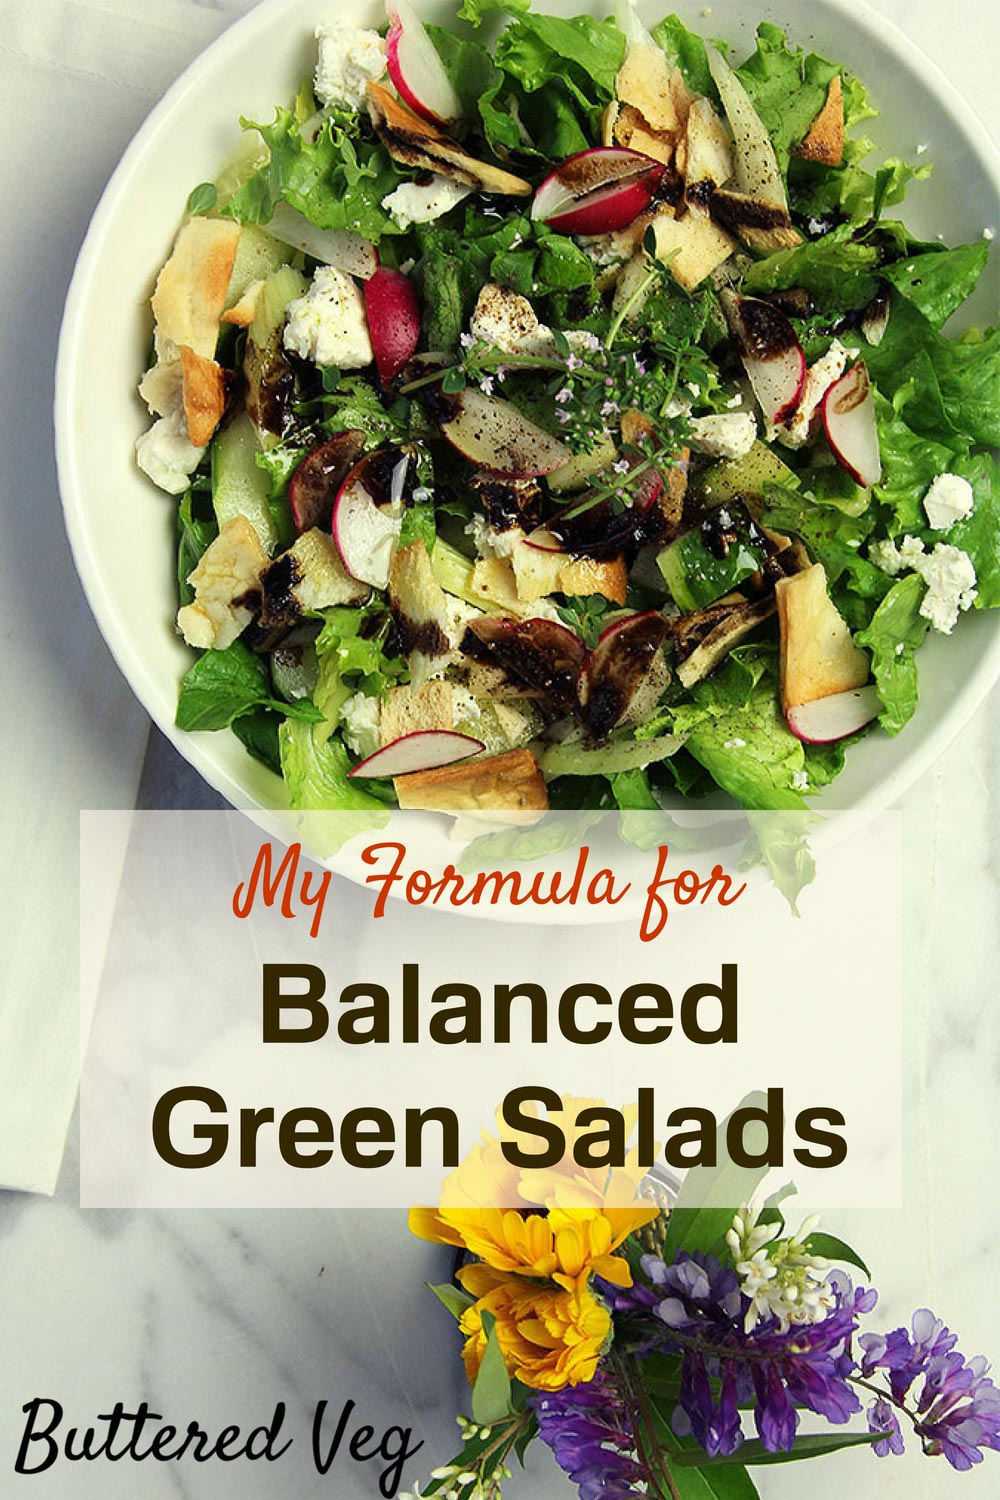 Andrea's Balanced Green Salad Secrets. Whenever I make a salad, my first principle is balance. How will I create a balance of colors, of textures, and of flavors? This balanced green salad recipe formula reveals all my secrets. #salad #balanced #vegetarian #realfood #plantbased #wholefood #healthy